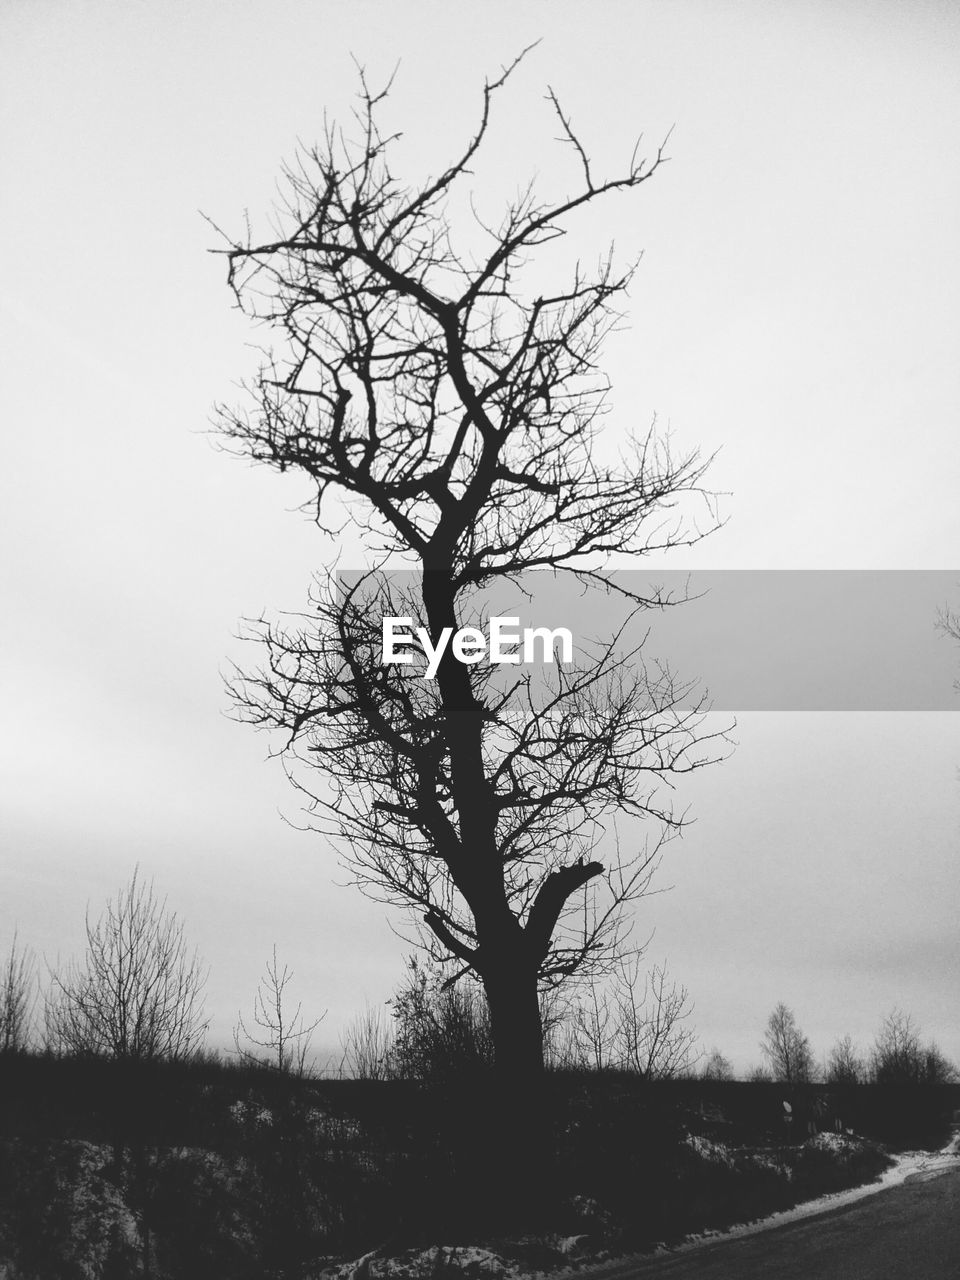 SILHOUETTE OF BARE TREE ON FIELD AGAINST SKY